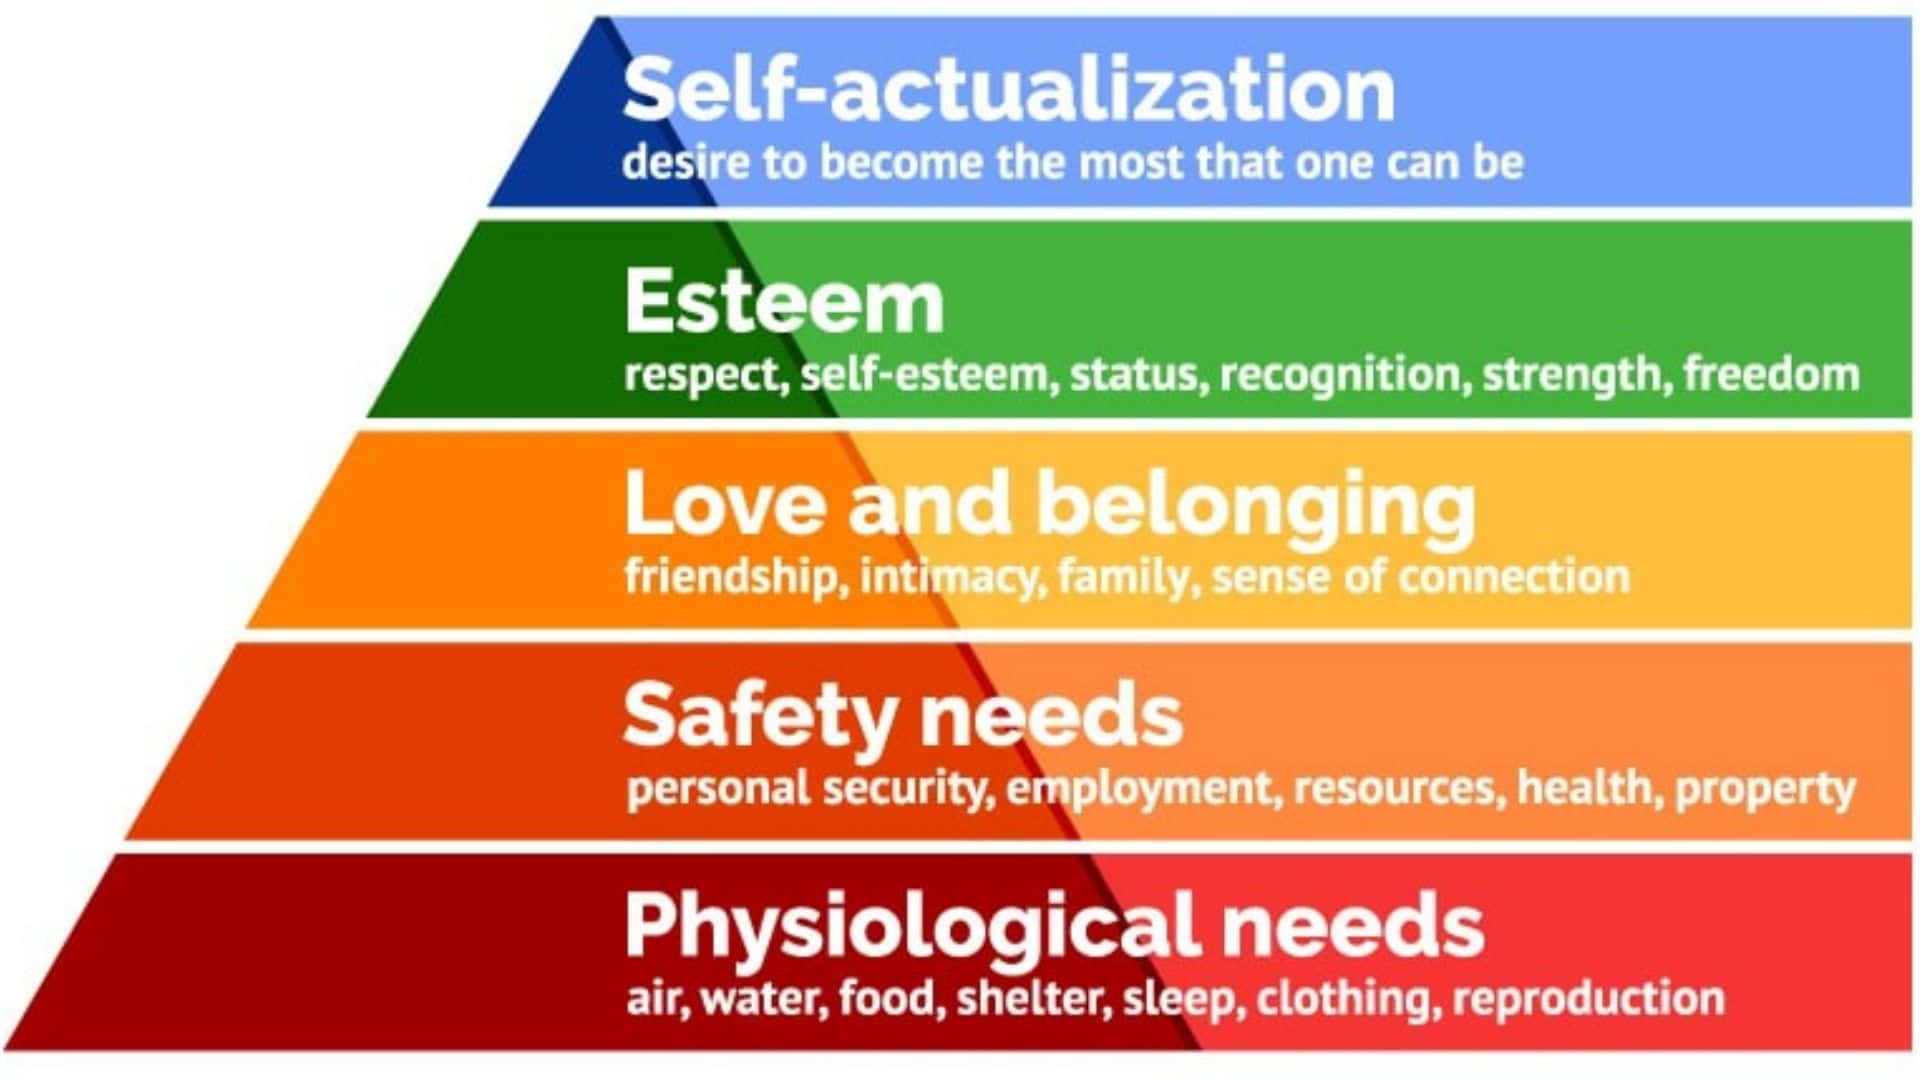 Pyramid of needs as per Maslow's Hierarchy